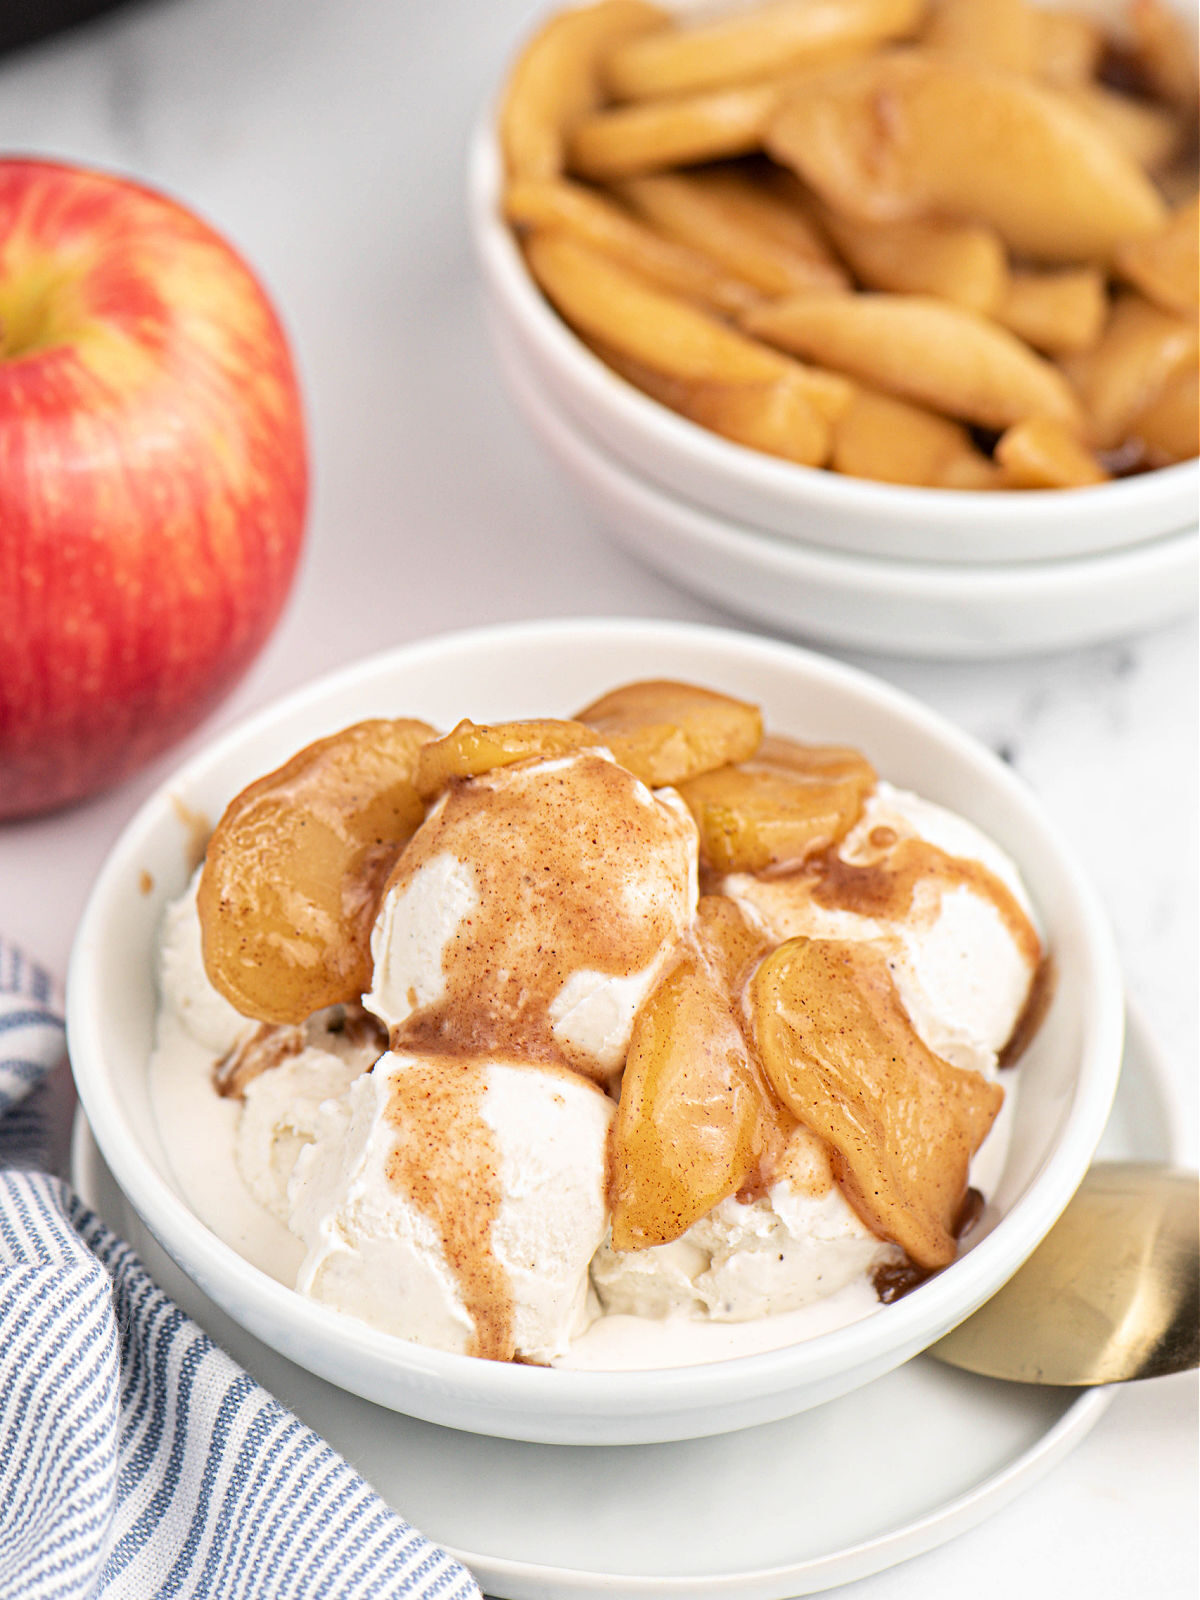 Vanilla ice cream with fried apples in a white bowl.